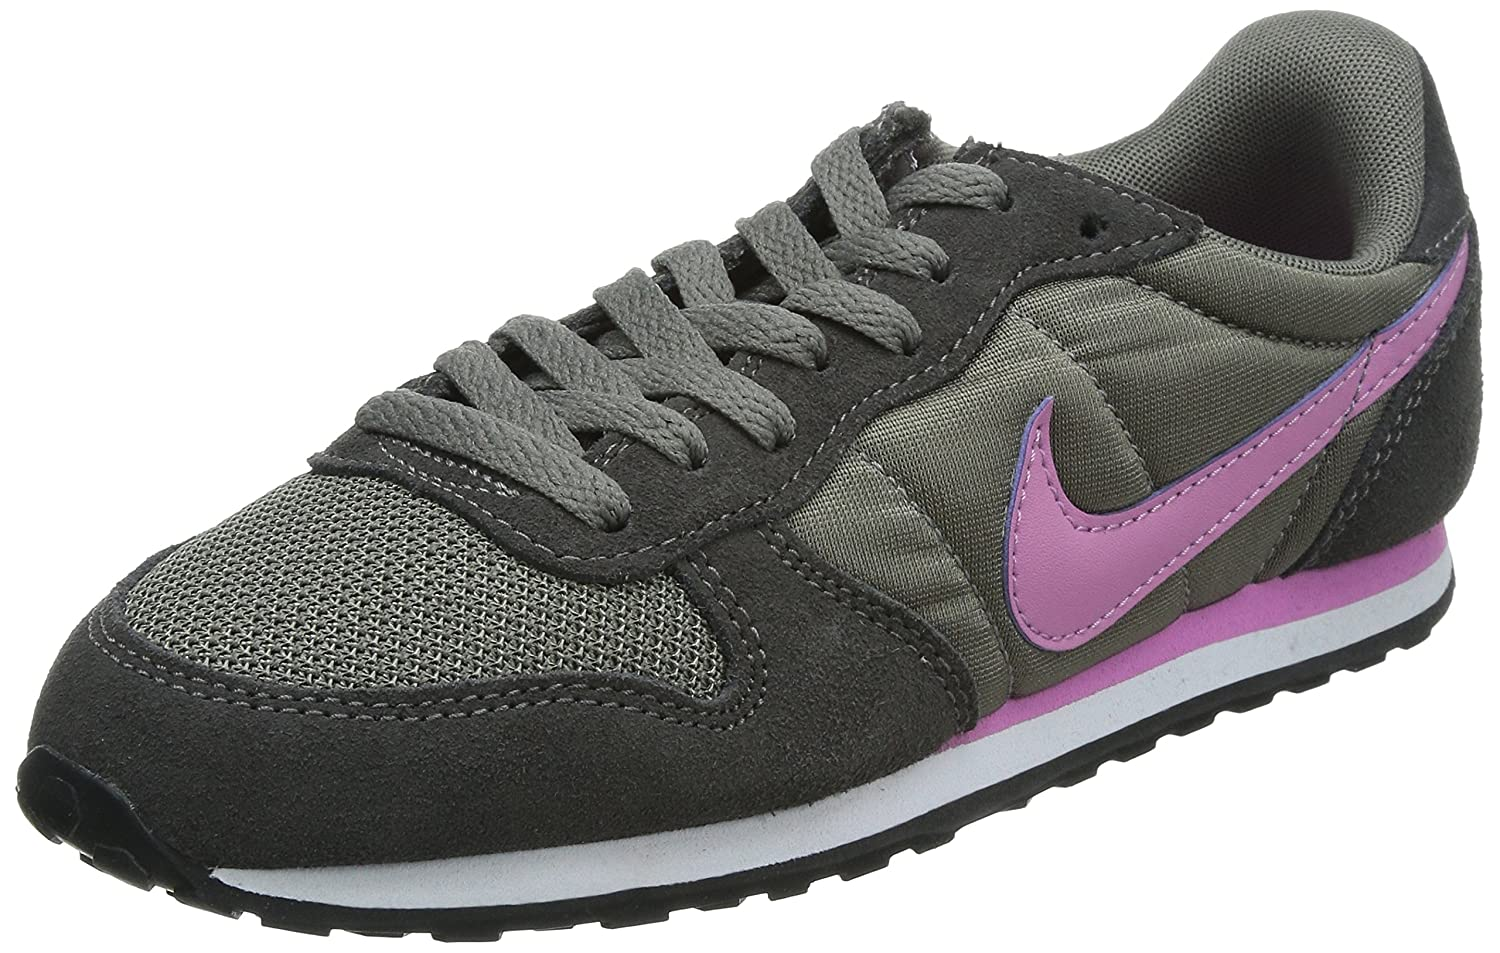 Amazon.com | Nike Genicco (Light Ash/Medium Ash/Light Magenta) Womens Shoes  (Light Ash/Medium Ash/Light Magenta) | Shoes